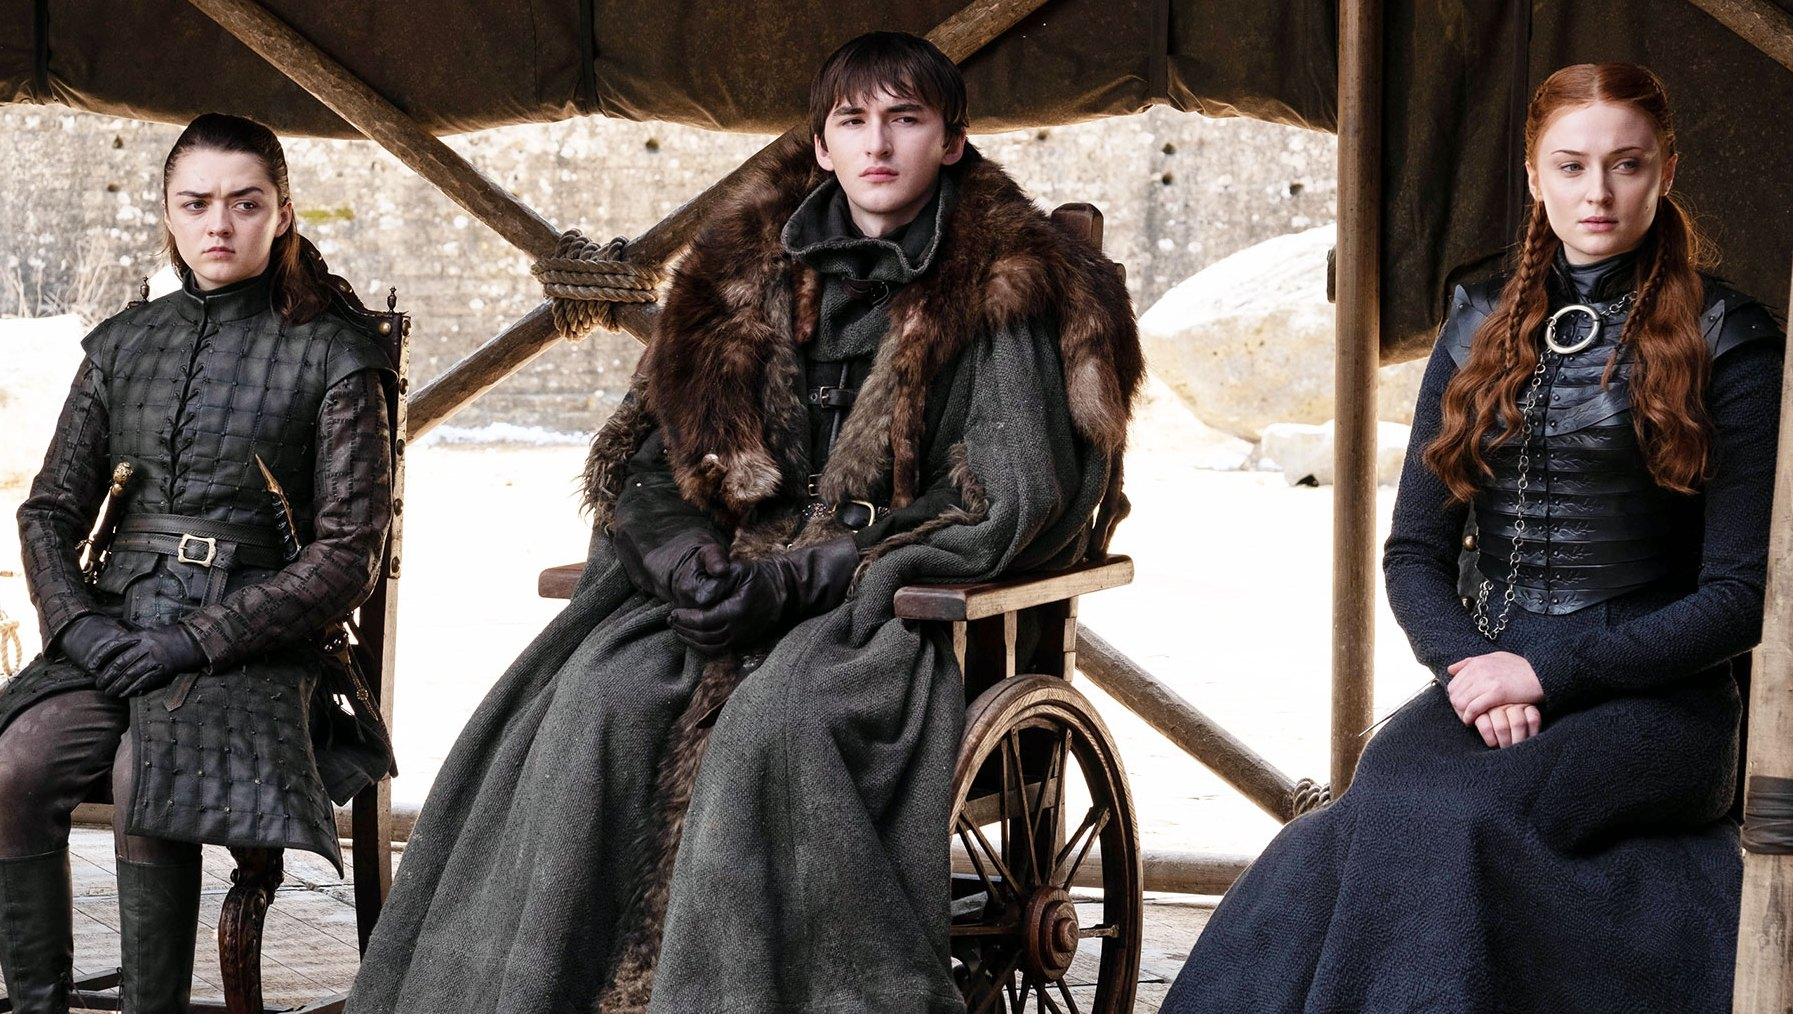 Maisie Williams Isaac Hempstead Wright Sophie Turner Game of Thrones Series Finale Worst Episode